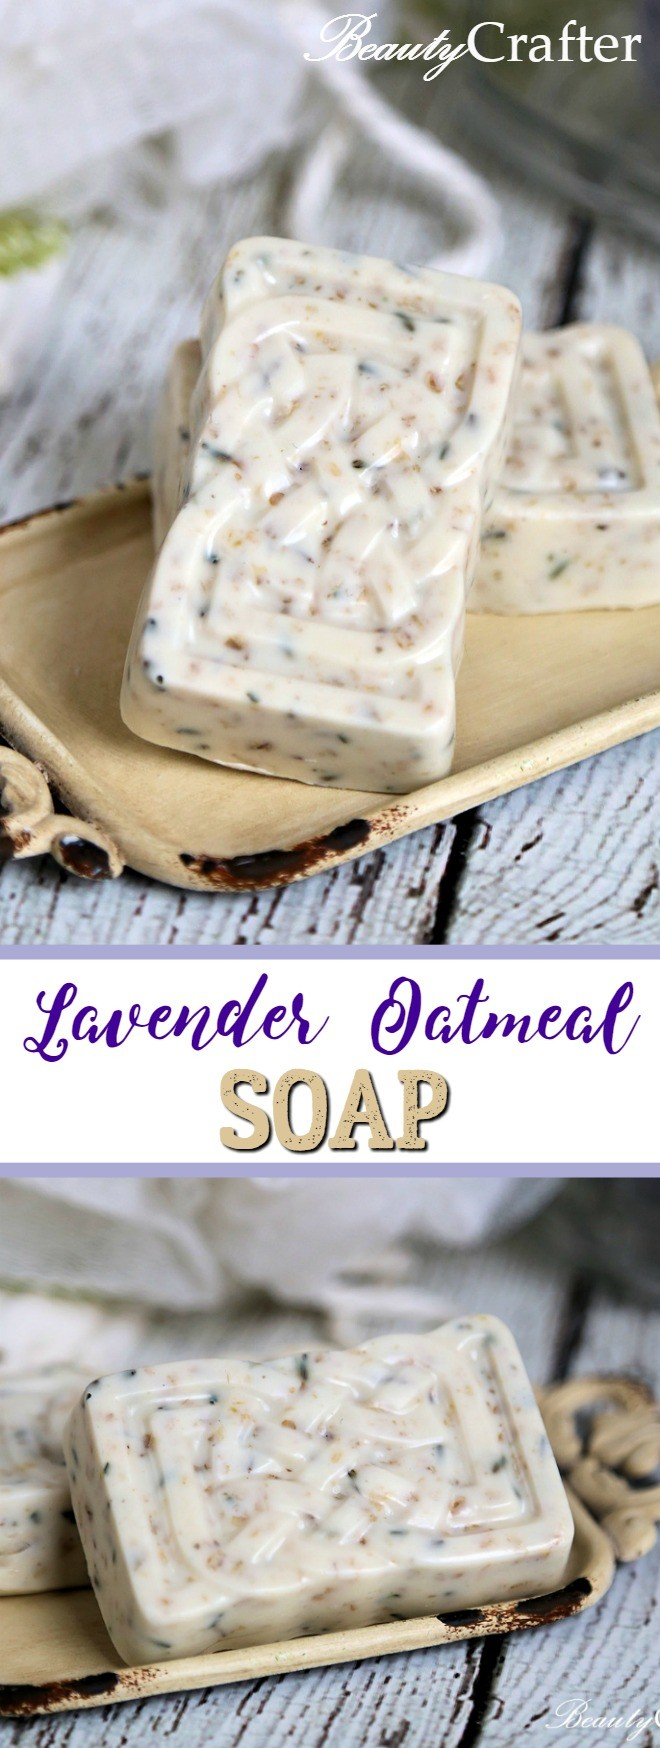 Lavender Oatmeal Soap Recipe Easy Diy Gift Beauty Crafter